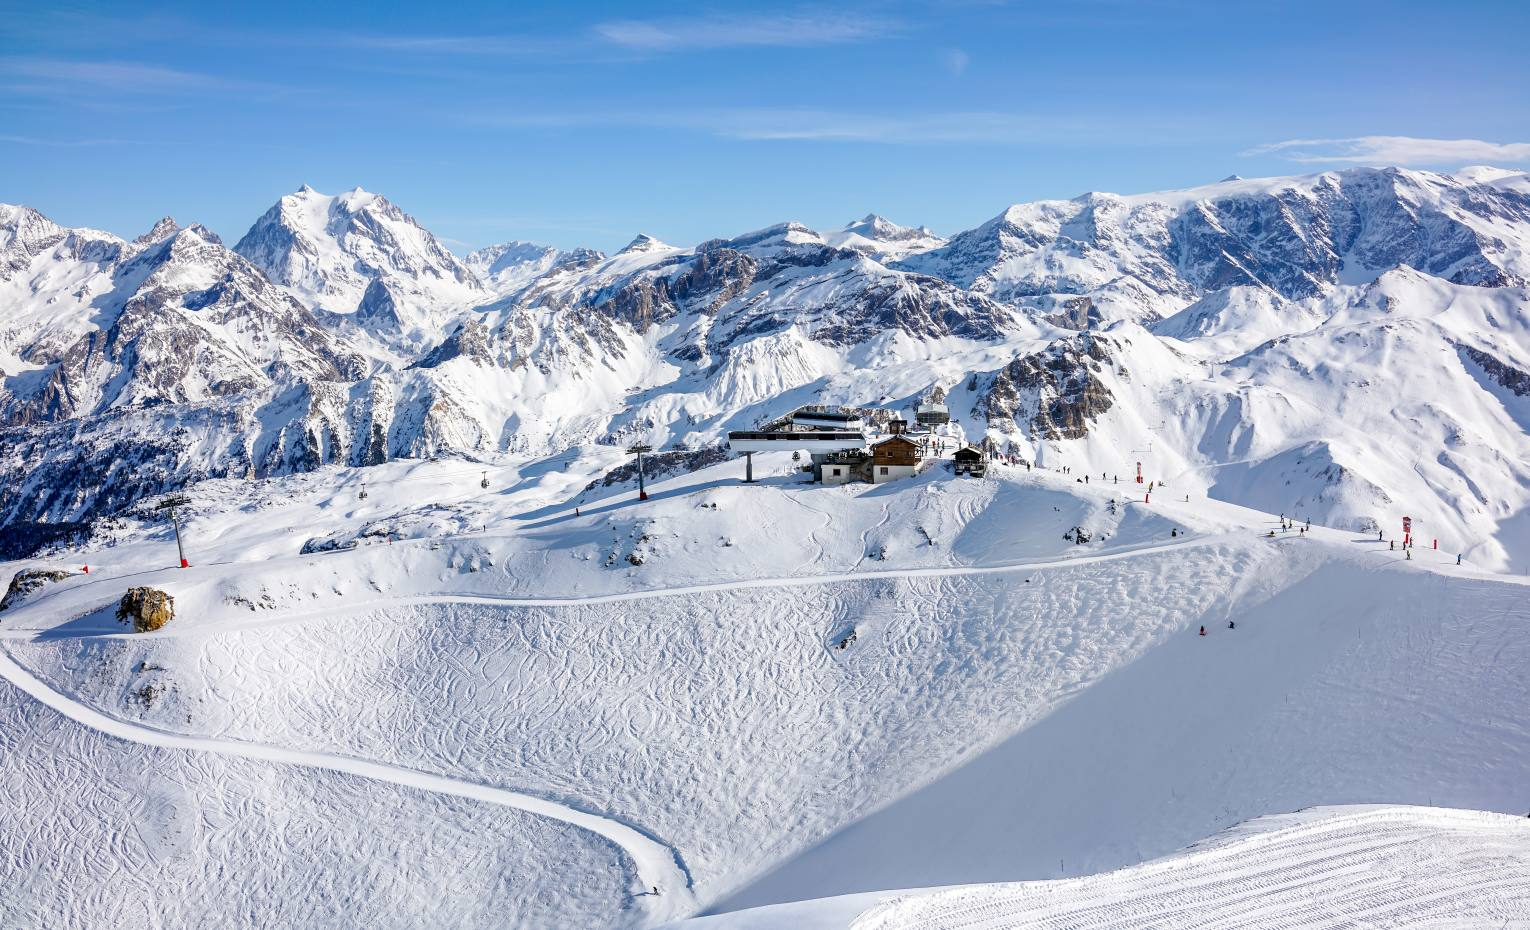 Courchevel in the French Alps is one of the destinations where Scott Dunn is offering the Flying Chefs experience